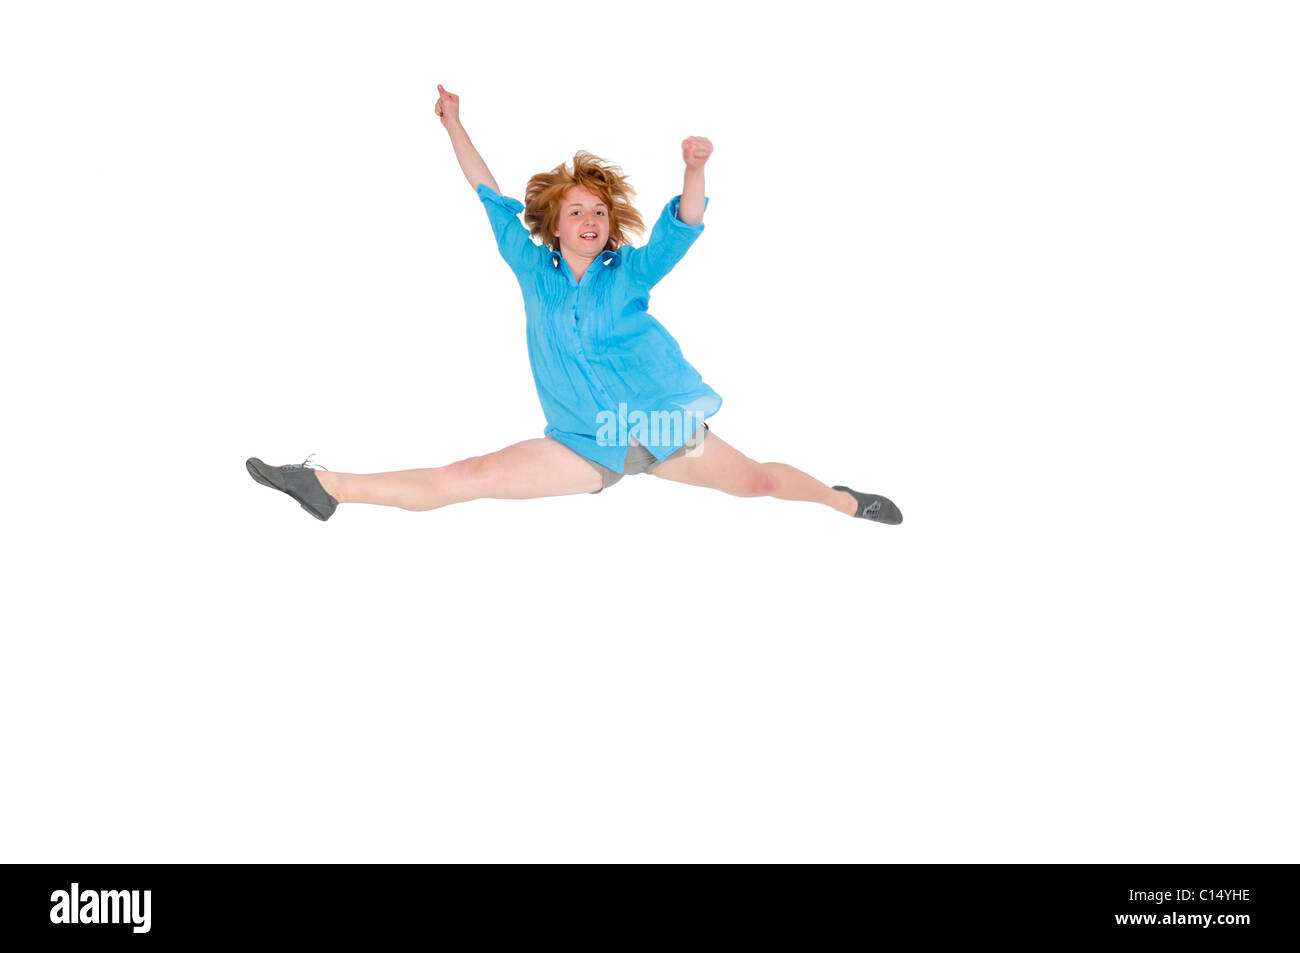 smiling young woman jumps with joy On white Background - Stock Image